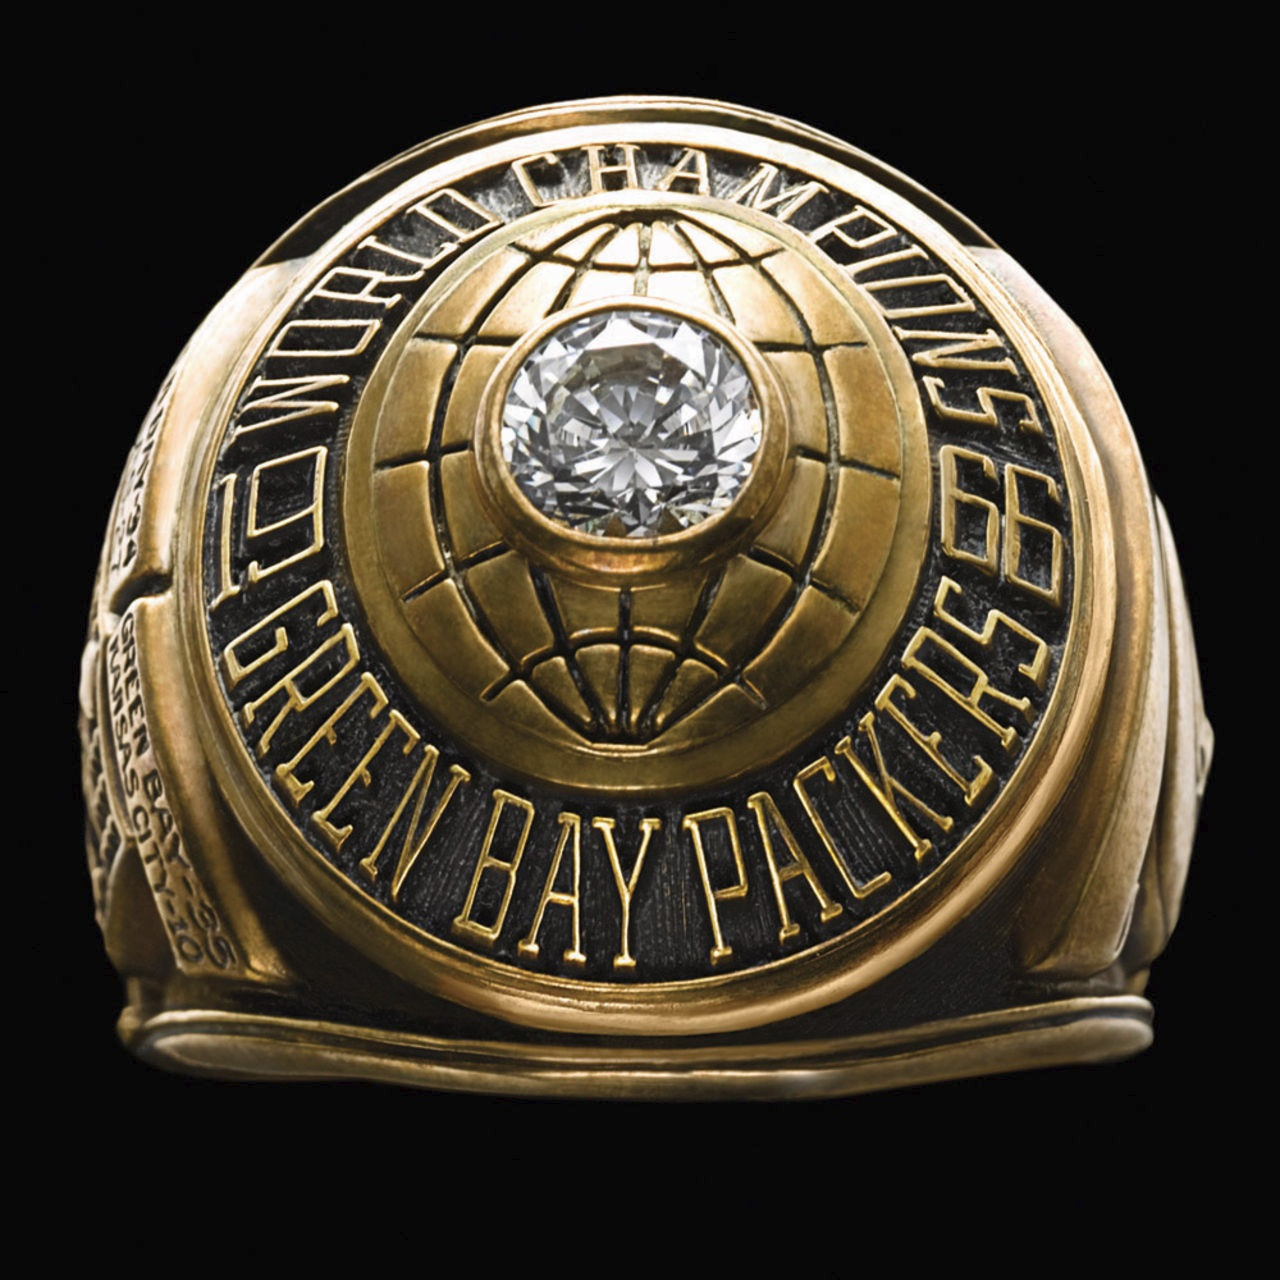 Green Bay Packers 1967 champions ring